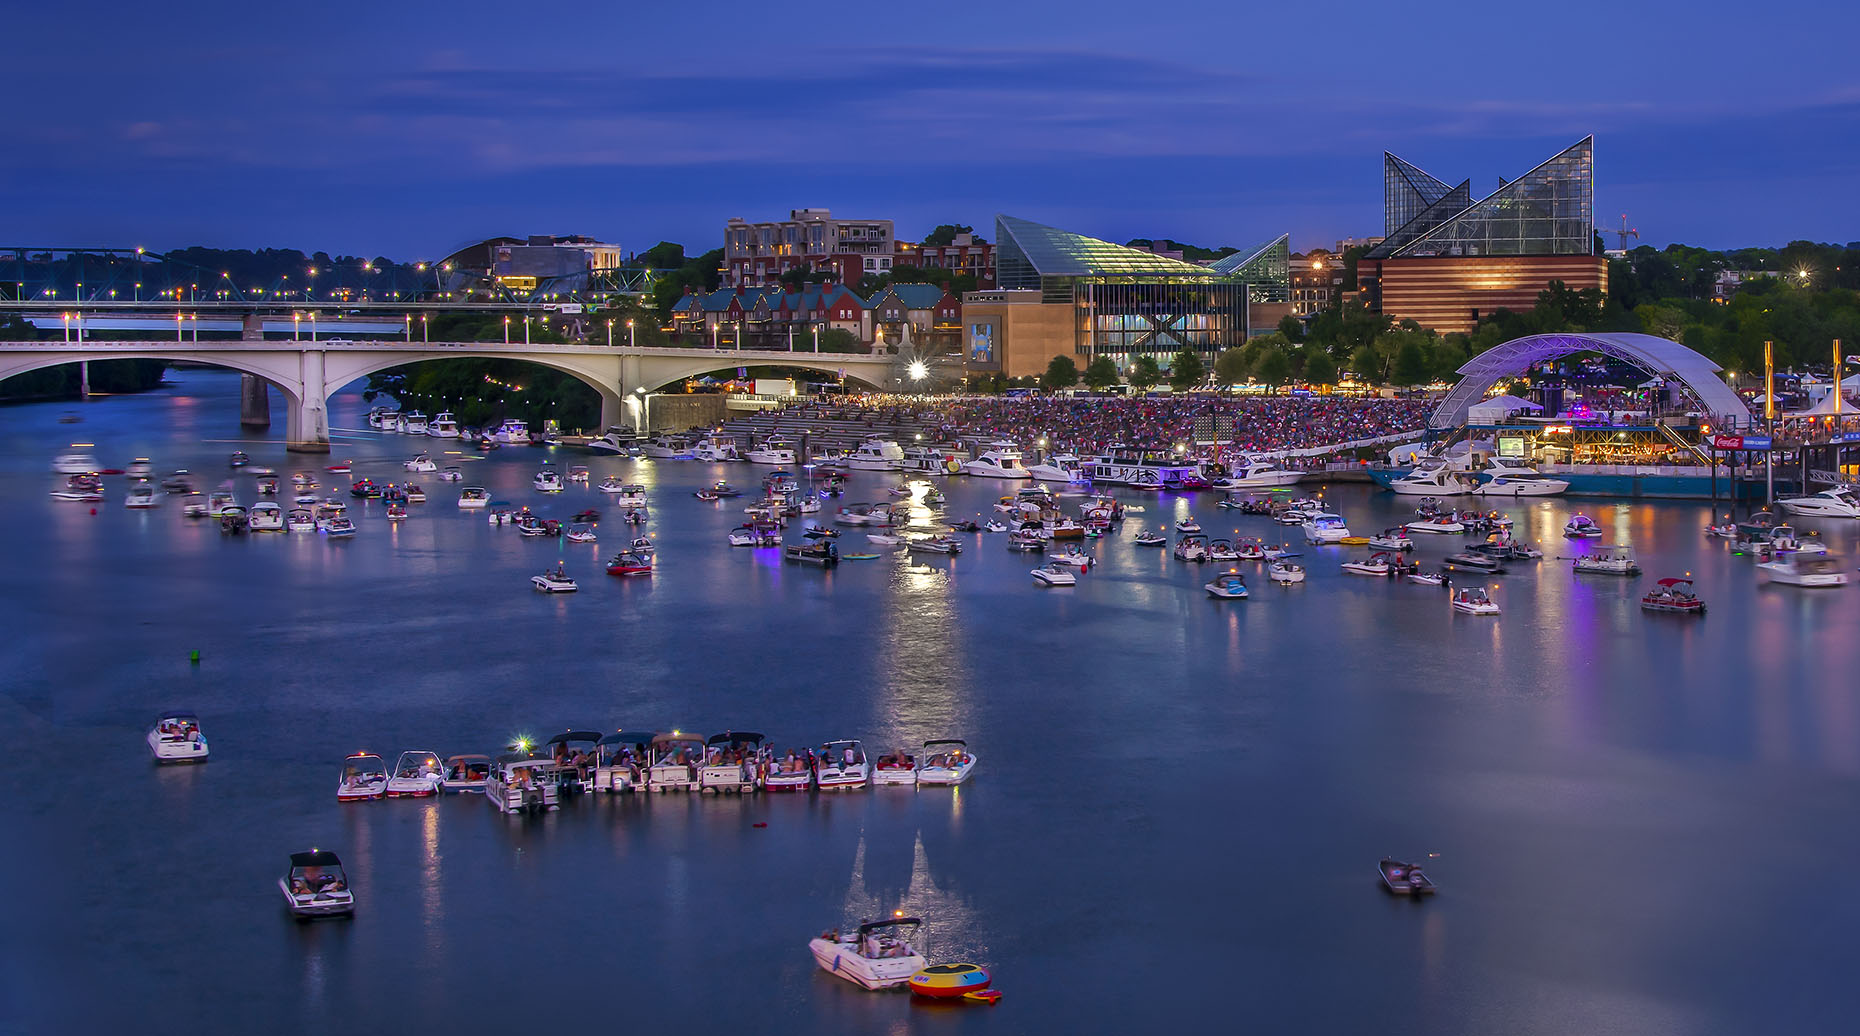 Riverbend2016-boats